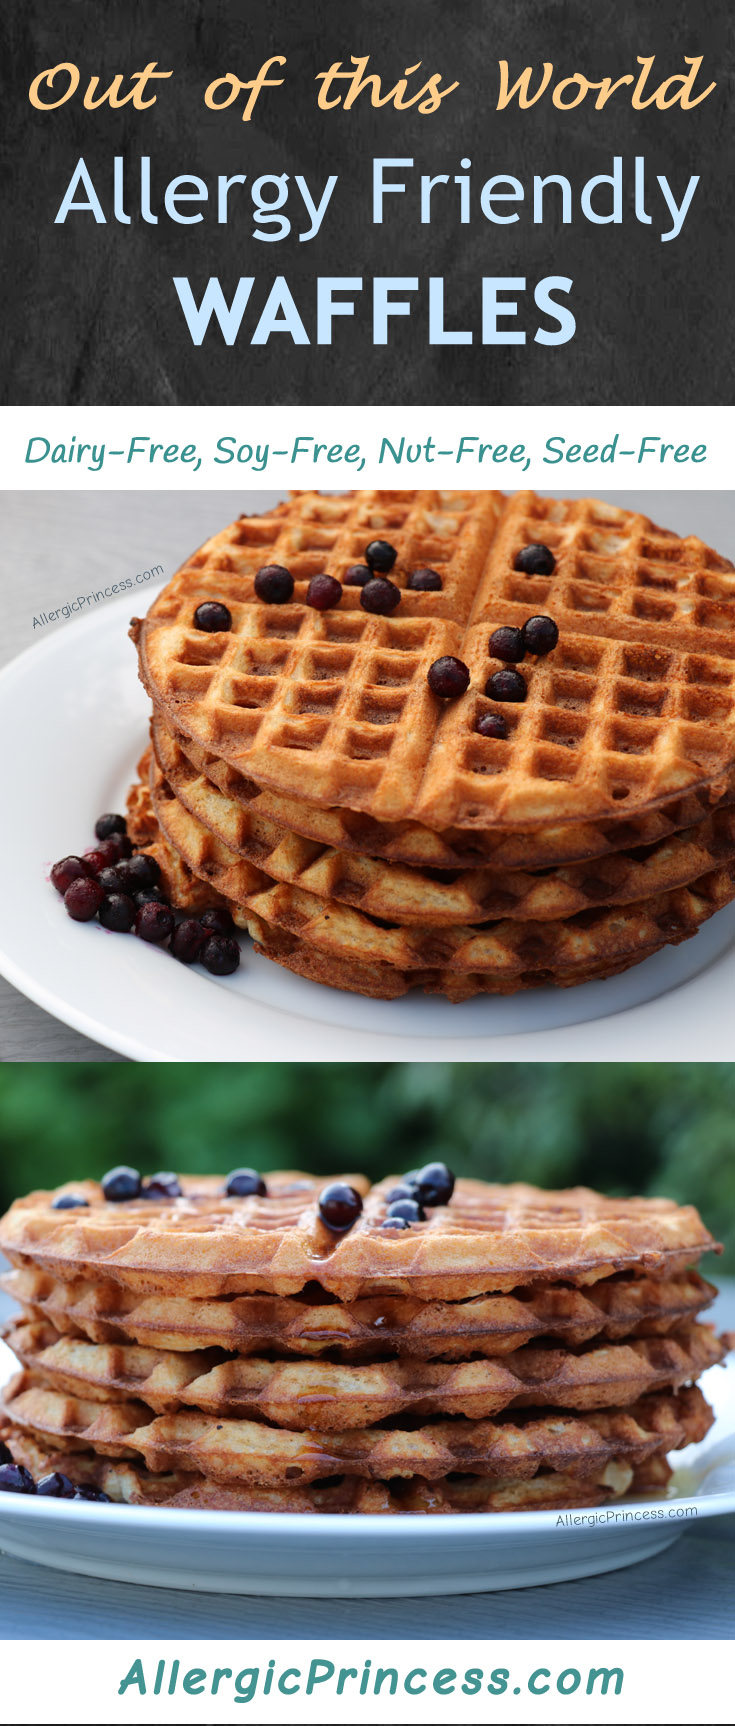 Allergy friendly waffles, dairy free, nut free, soy free, seed free